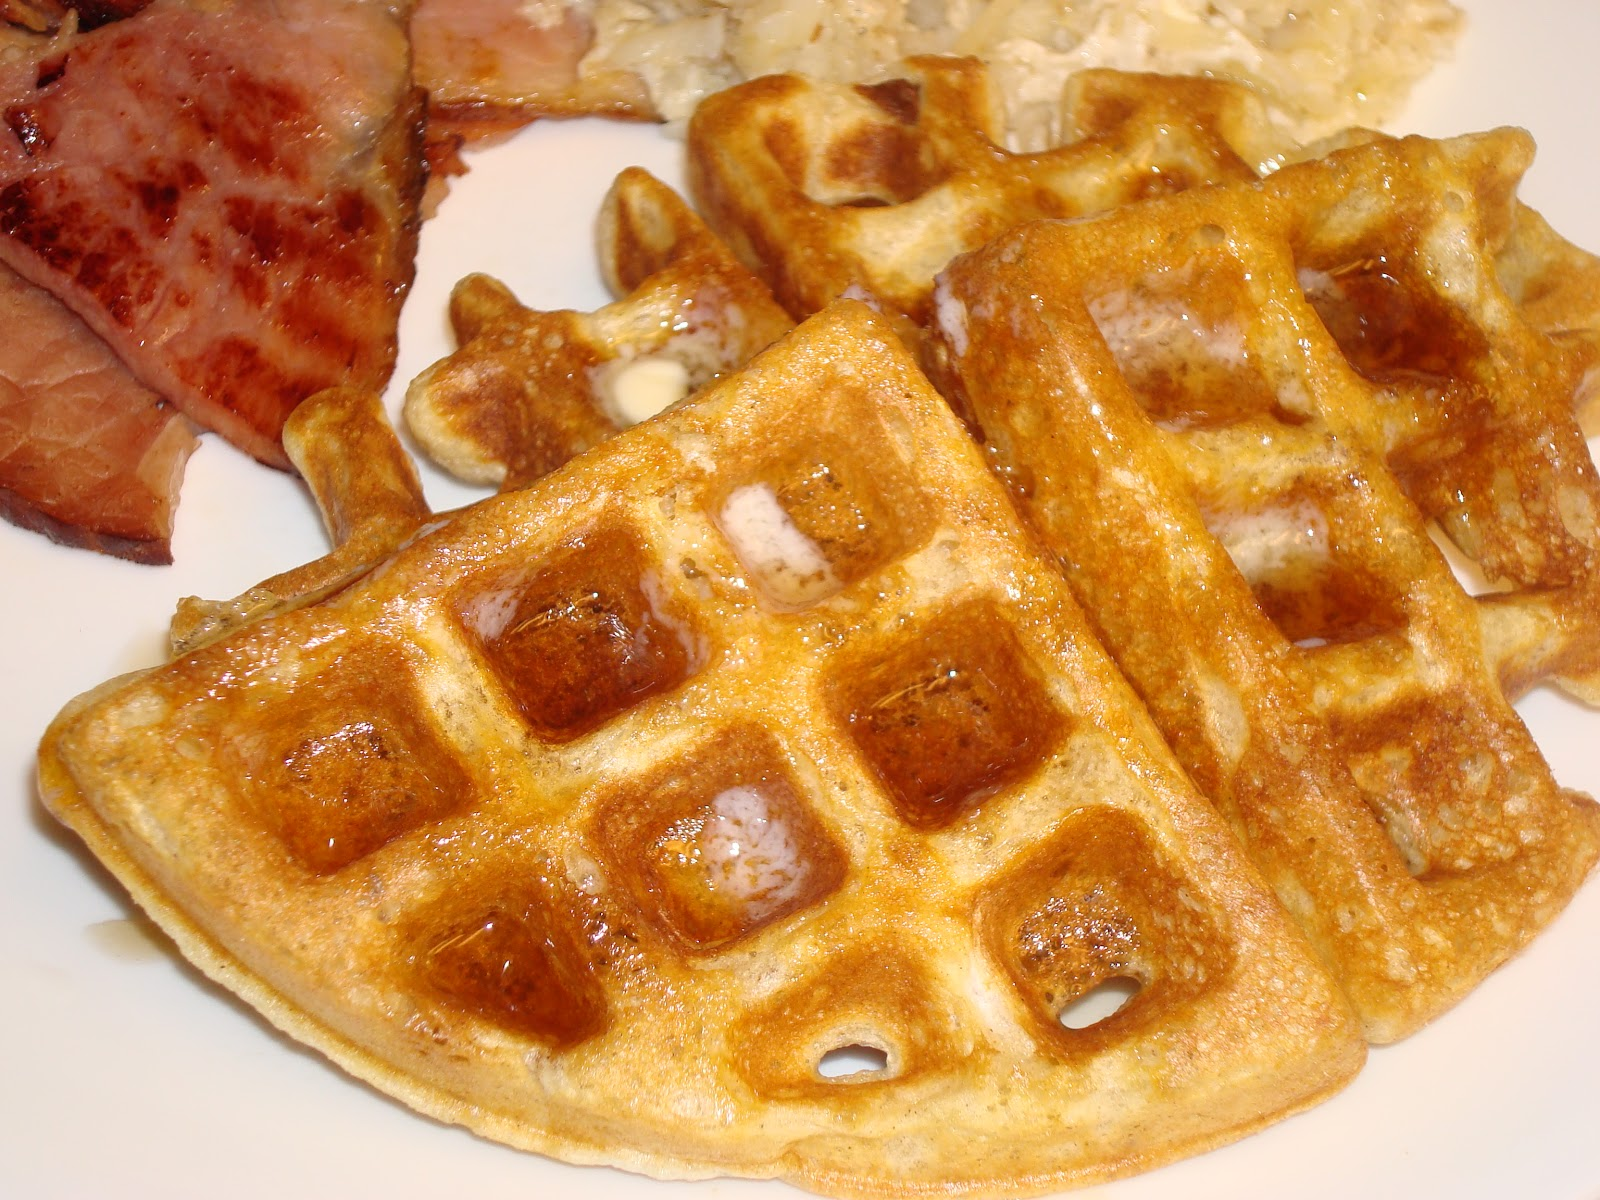 Make lemonade and more!: Cinnamon Belgian Waffles